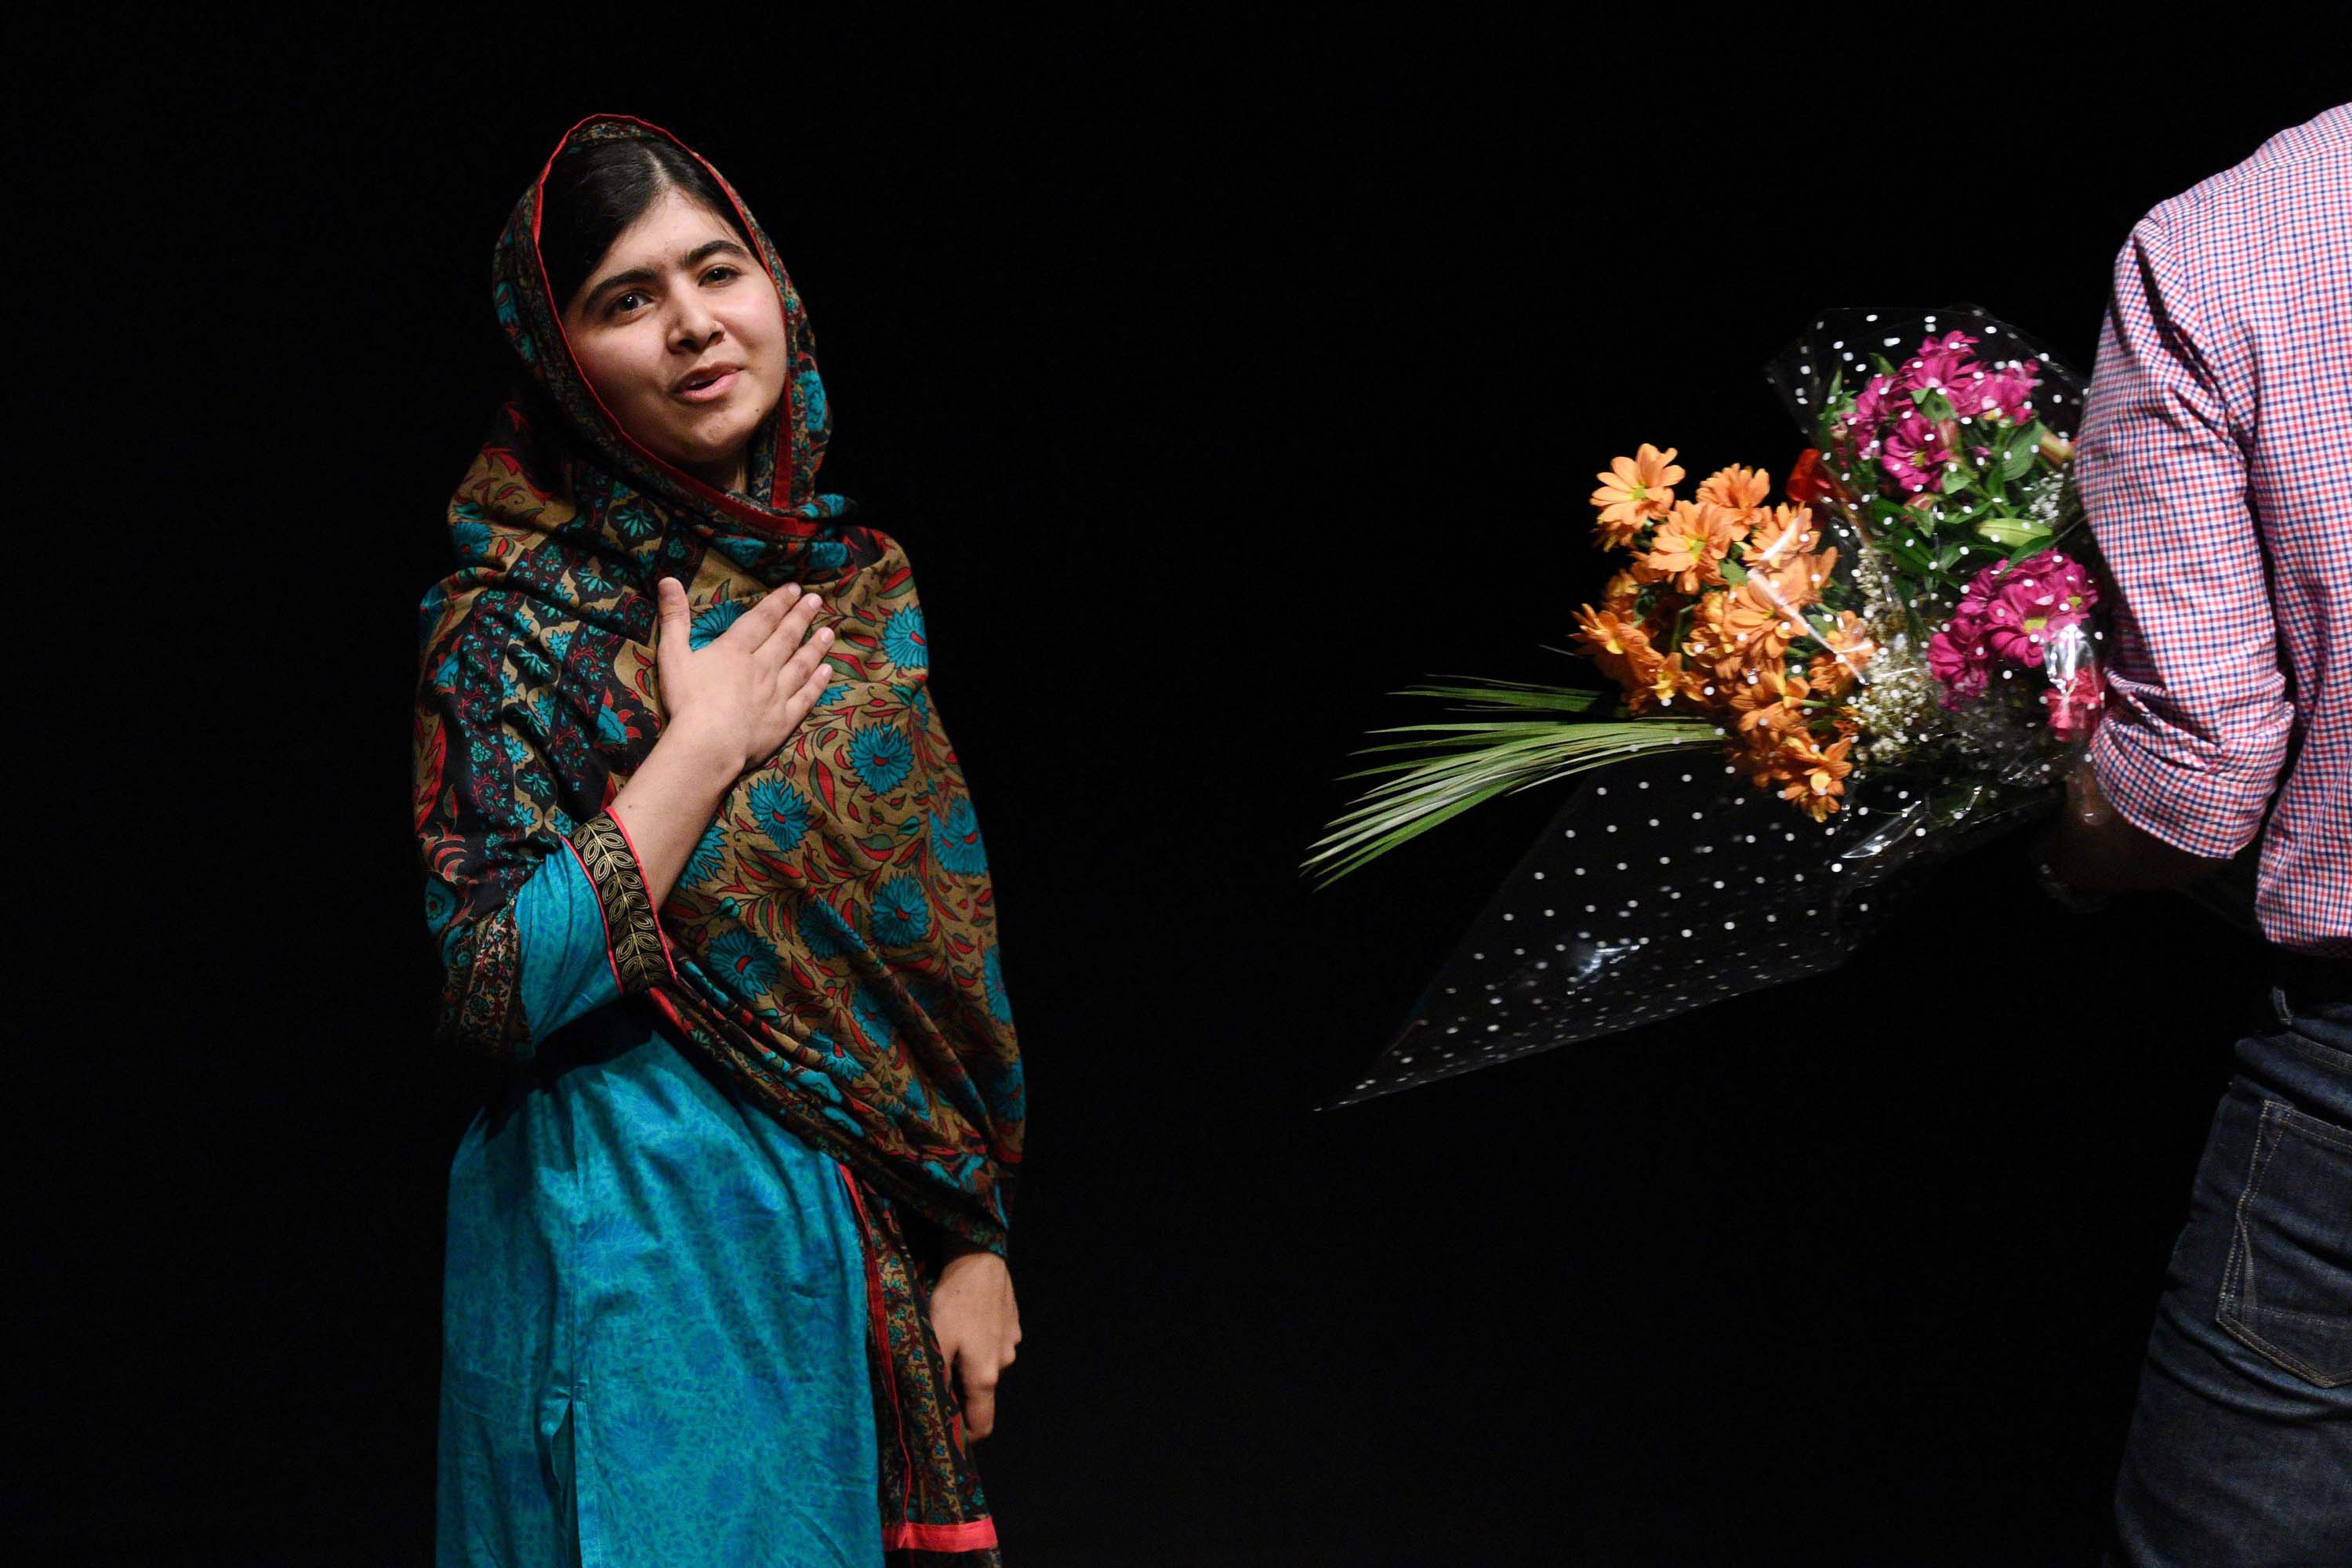 The Nobel Peace Prize went to 17-year-old Pakistani Malala Yousafzai and India's Kailash Satyarthi for their work promoting children's rights.  Yousafzai gestures after addressing the media in Birmingham, central England on Oct. 10, 2014.